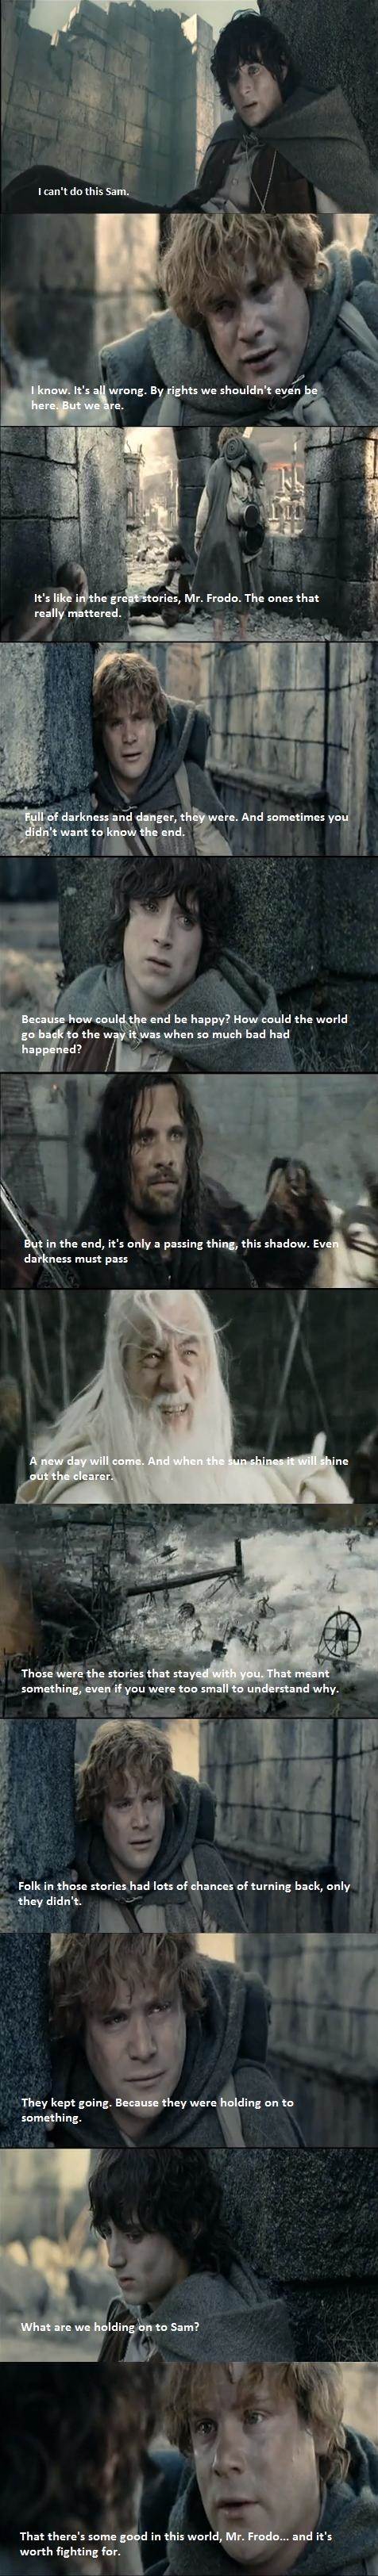 LOTR 30 Day Challenge Day 8: Most Inspiring Moment: When Frodo And Sam Have